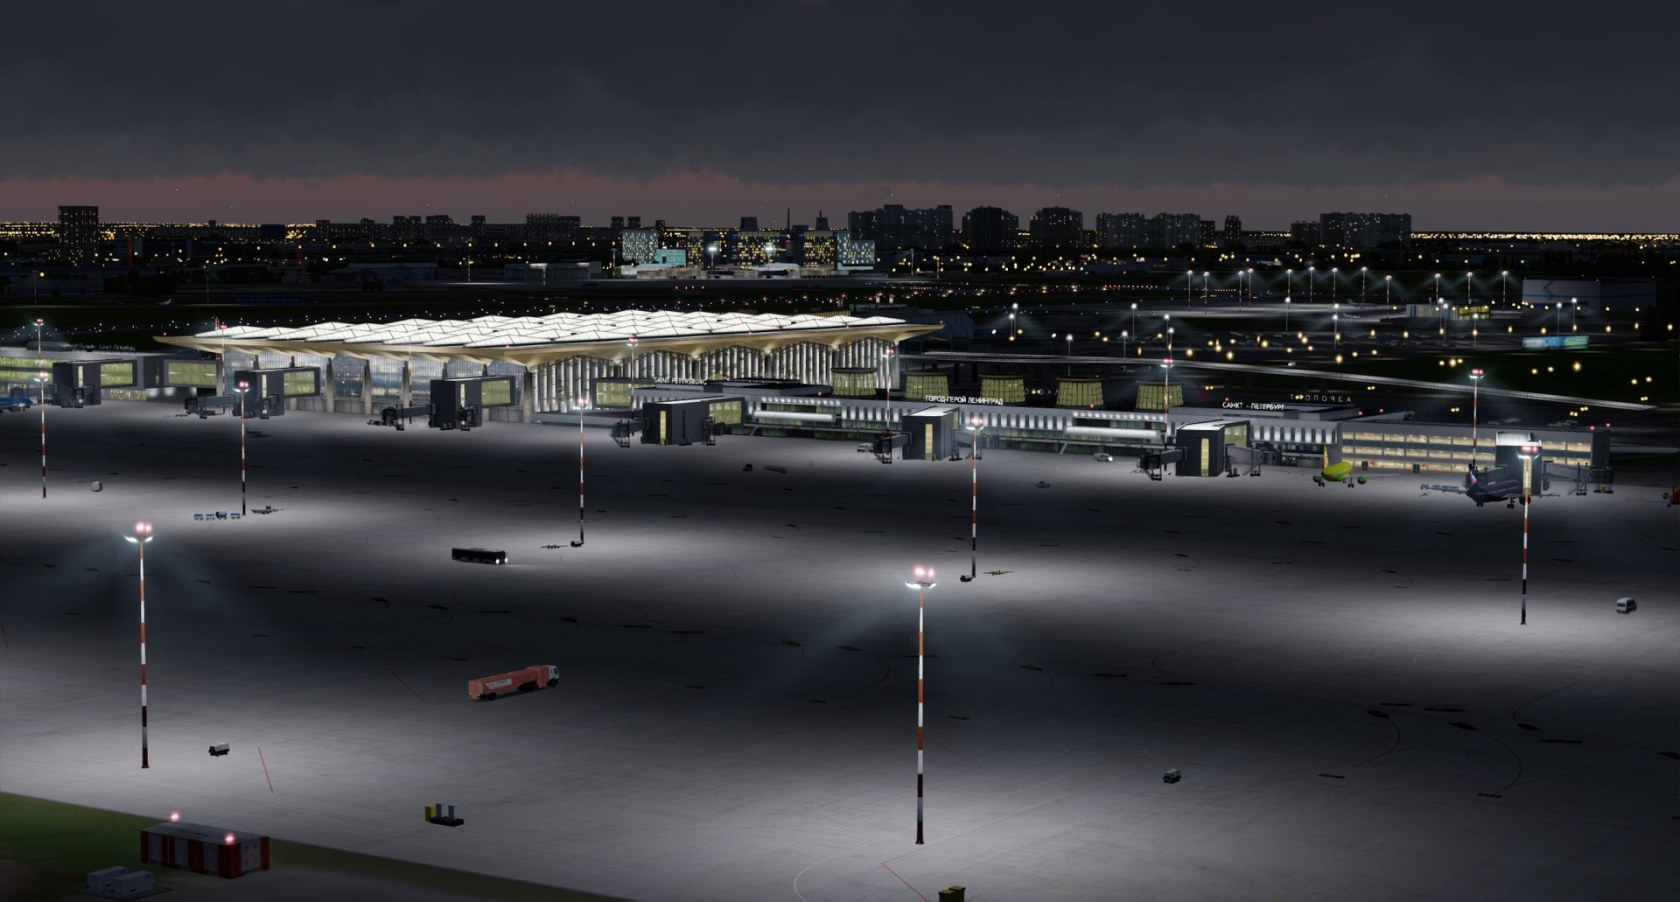 St. Petersburg v3 for Prepar3D v4 by Digital Design – Image 7